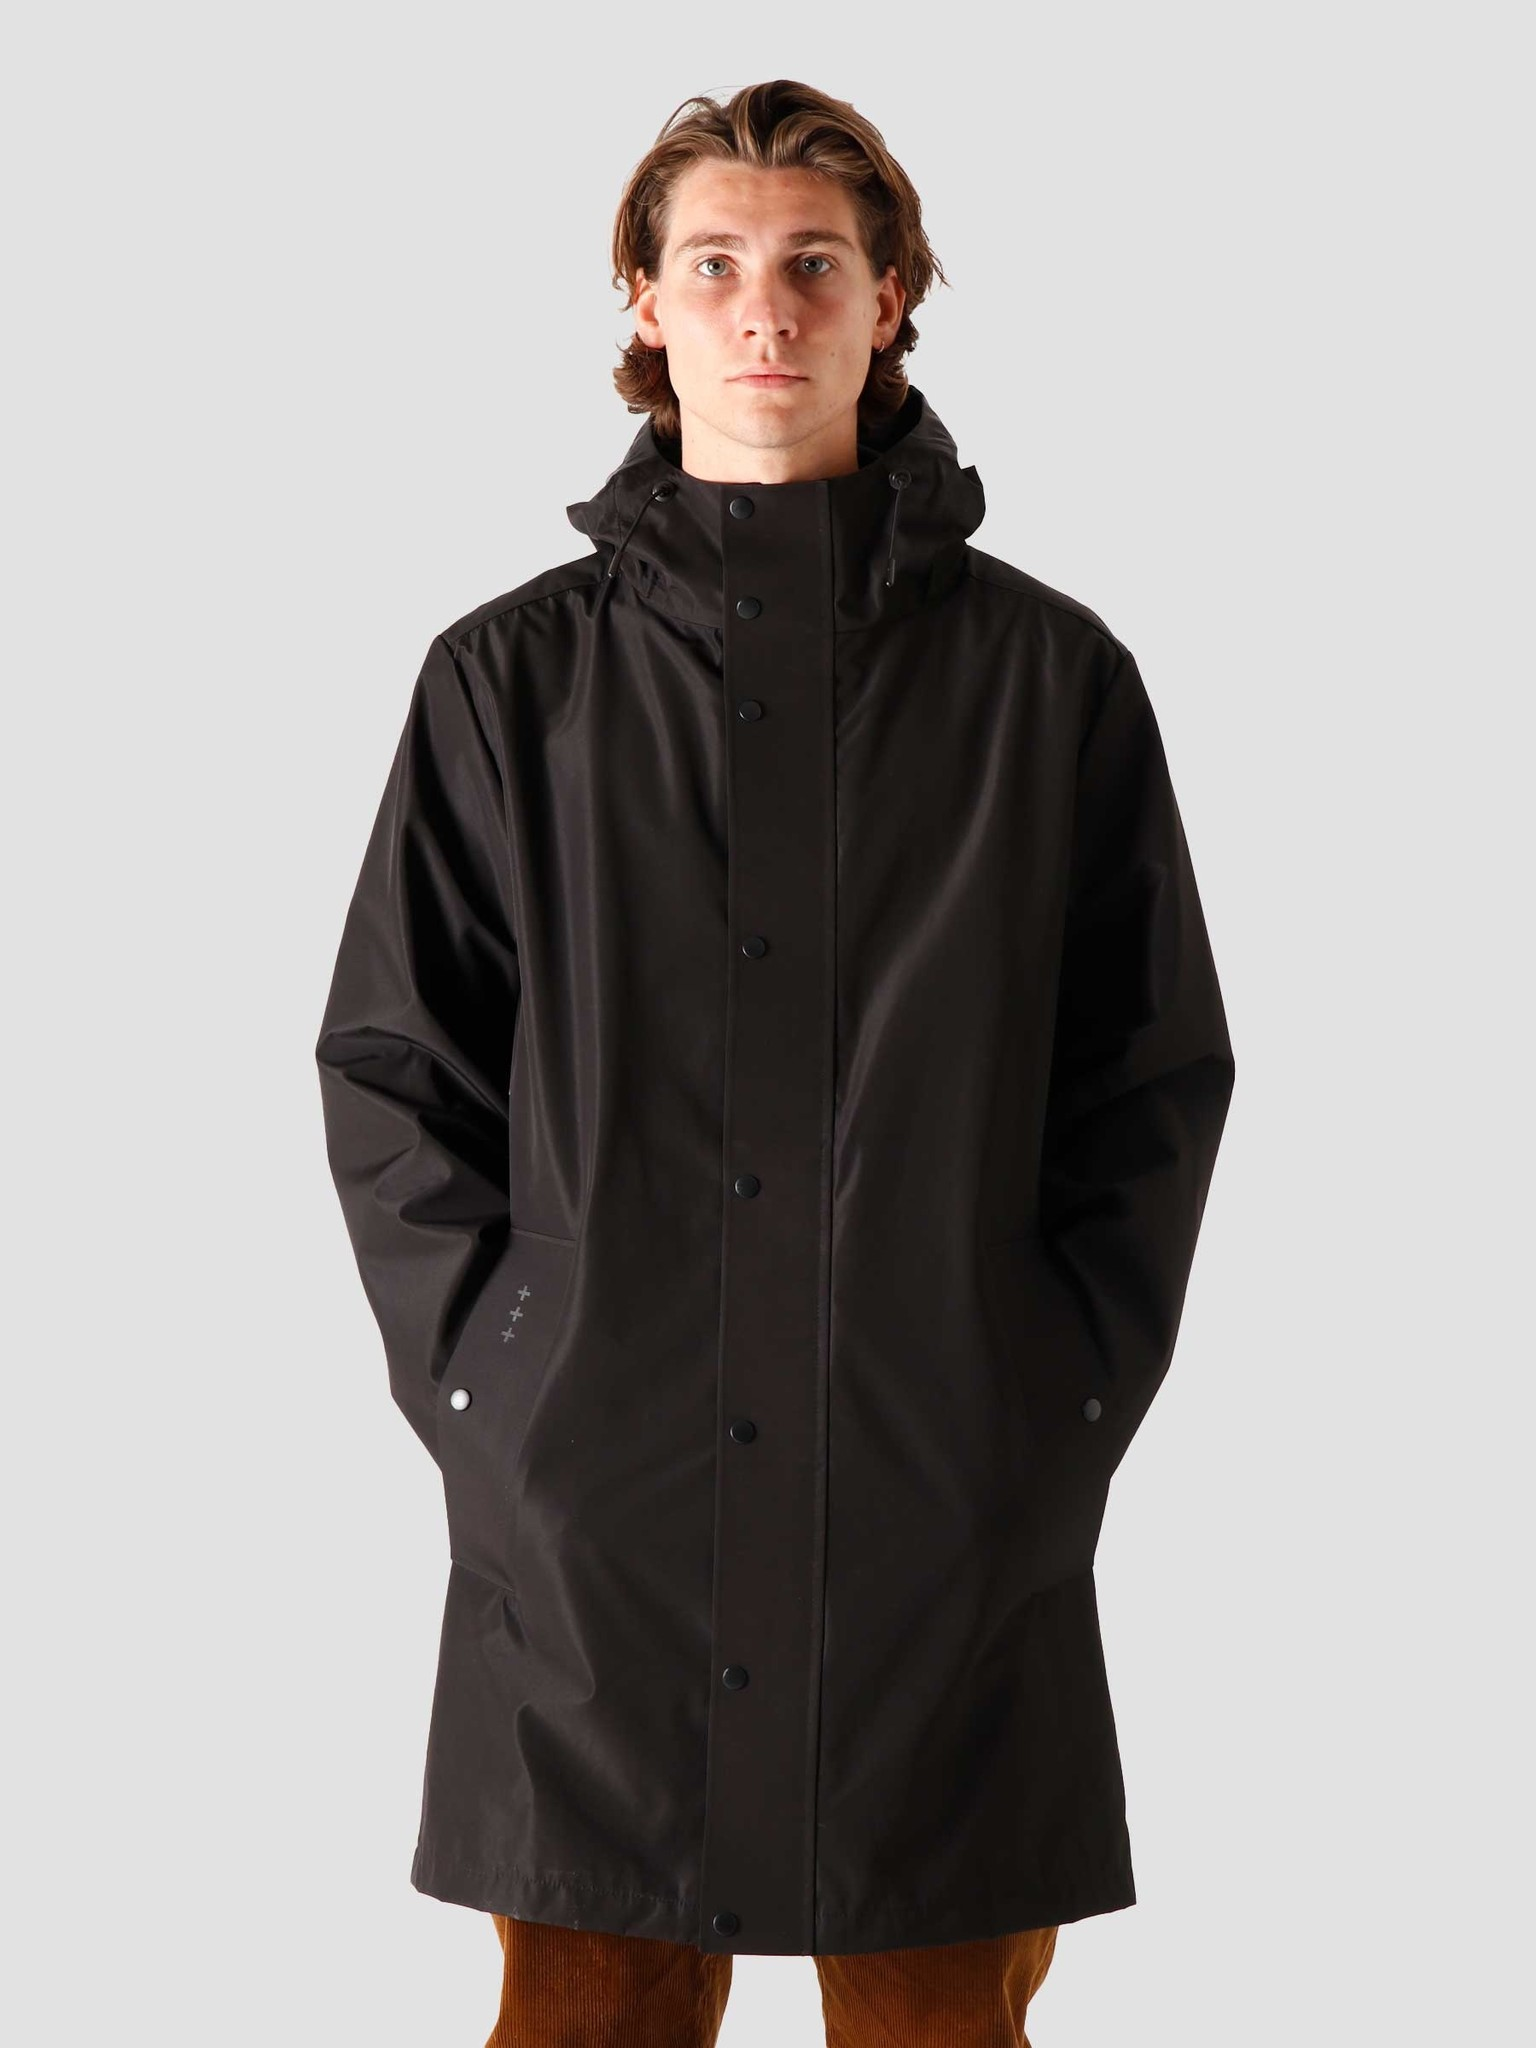 Quality Blanks Quality Blanks QB220 Rain Coat Black